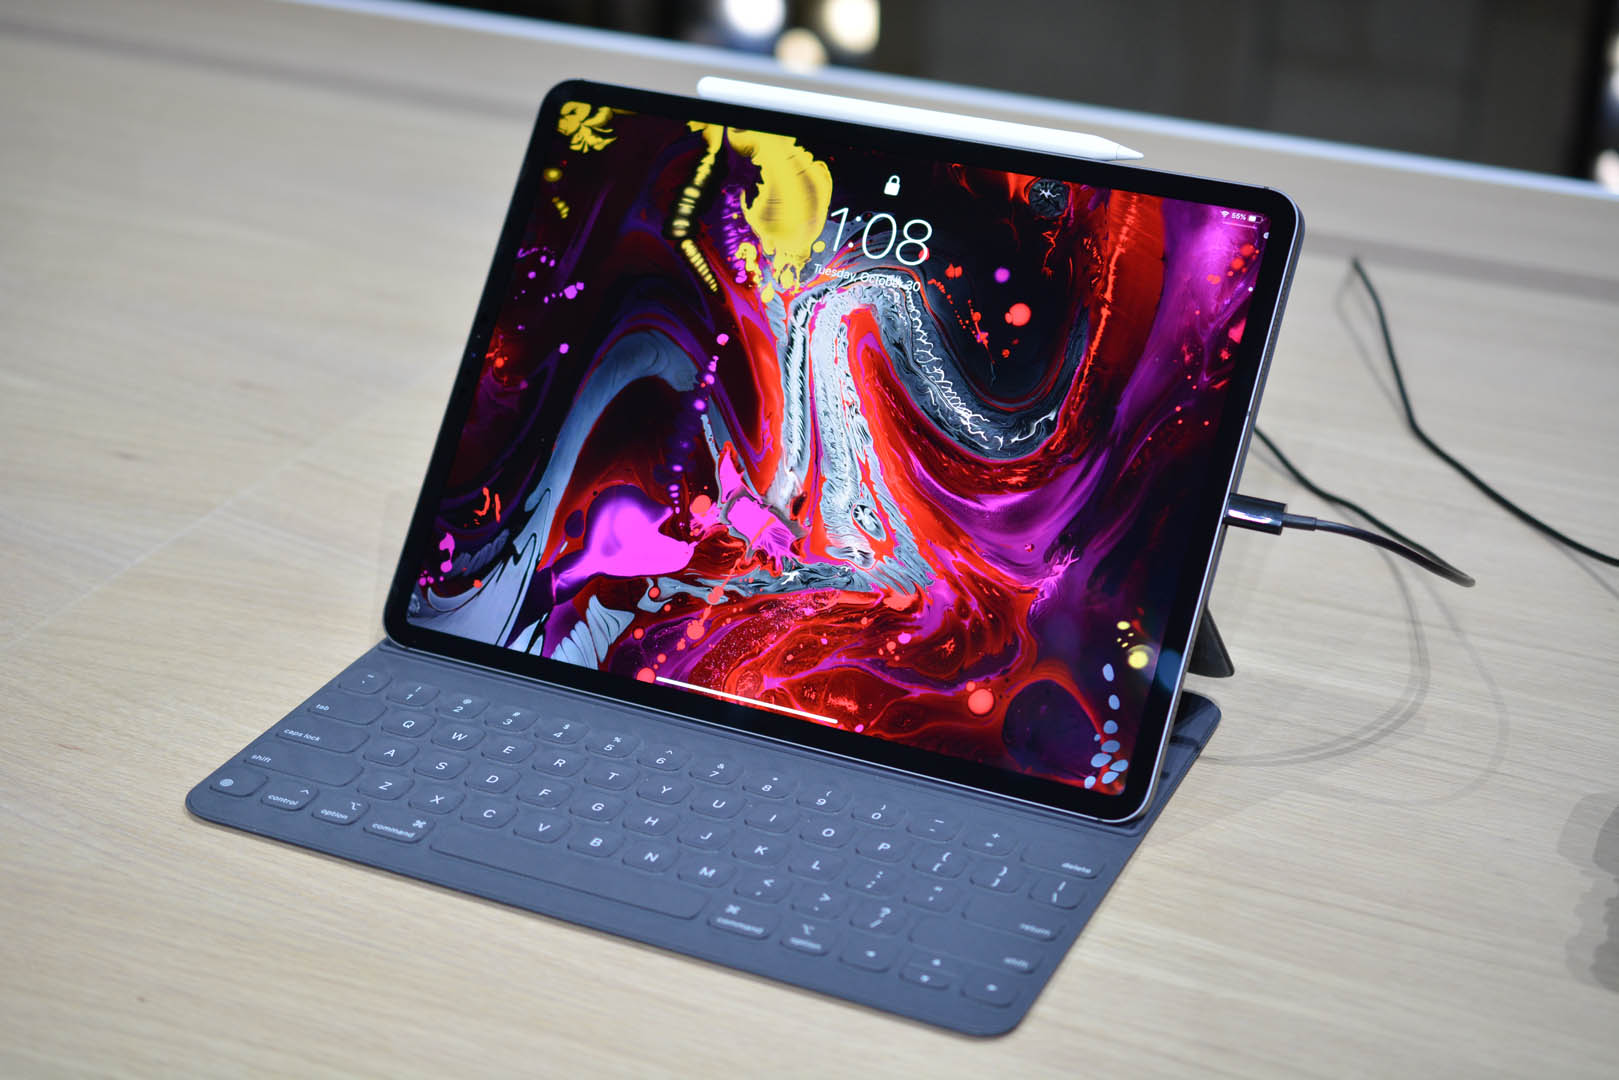 Apple's newest iPad Pros are on sale today.